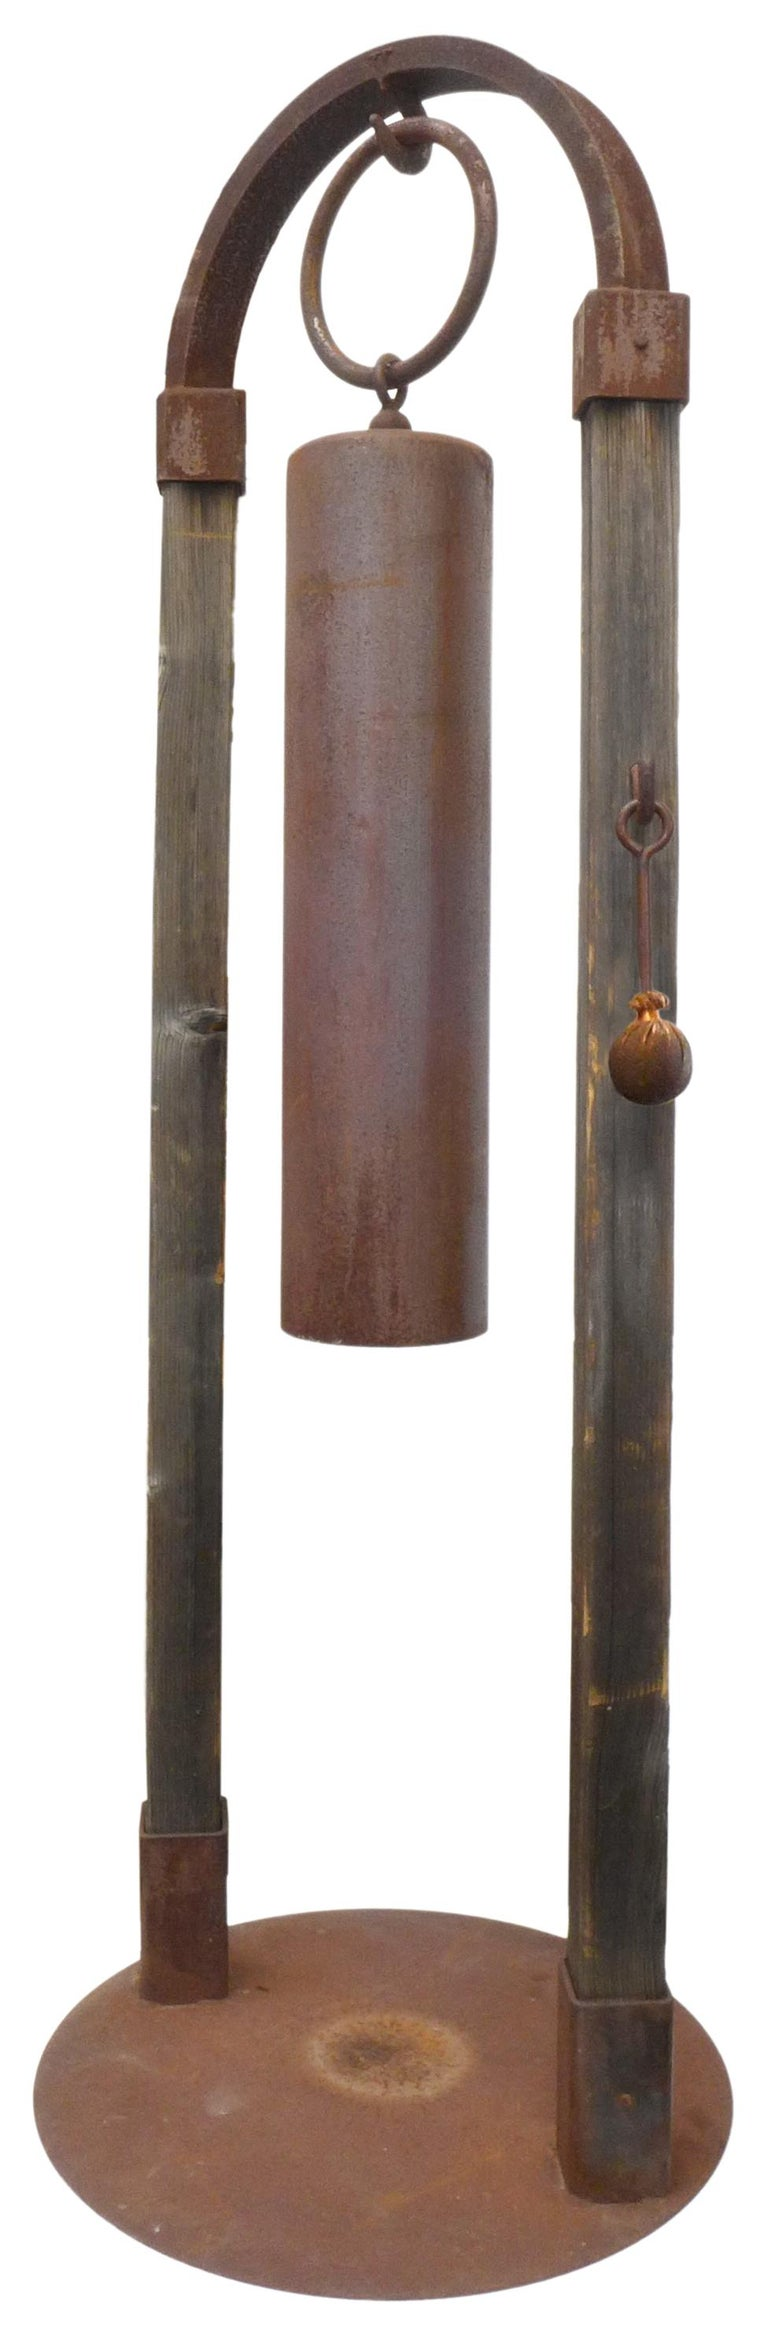 An incredible, monumental garden bell by Tom Torrens. A custom, Japanese-inspired edifice in iron and wood; an arch 7 feet in height suspending a large, cylindrical bell by oversized hook and ring. Custom, original iron and leather striking-mallet